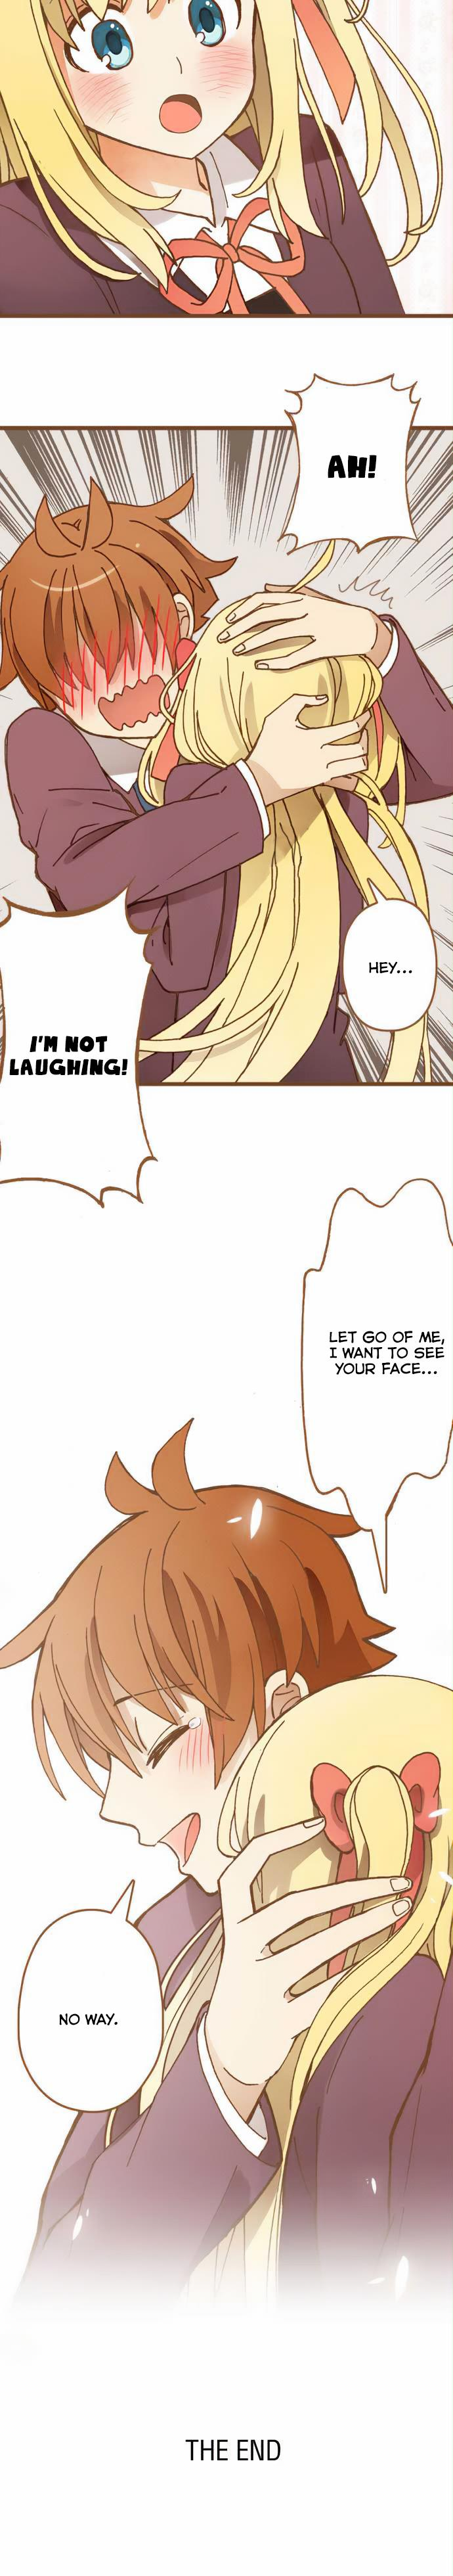 Love Potion Brewing Chapter 50: Unwilling To Let Go page 17 - Mangakakalots.com